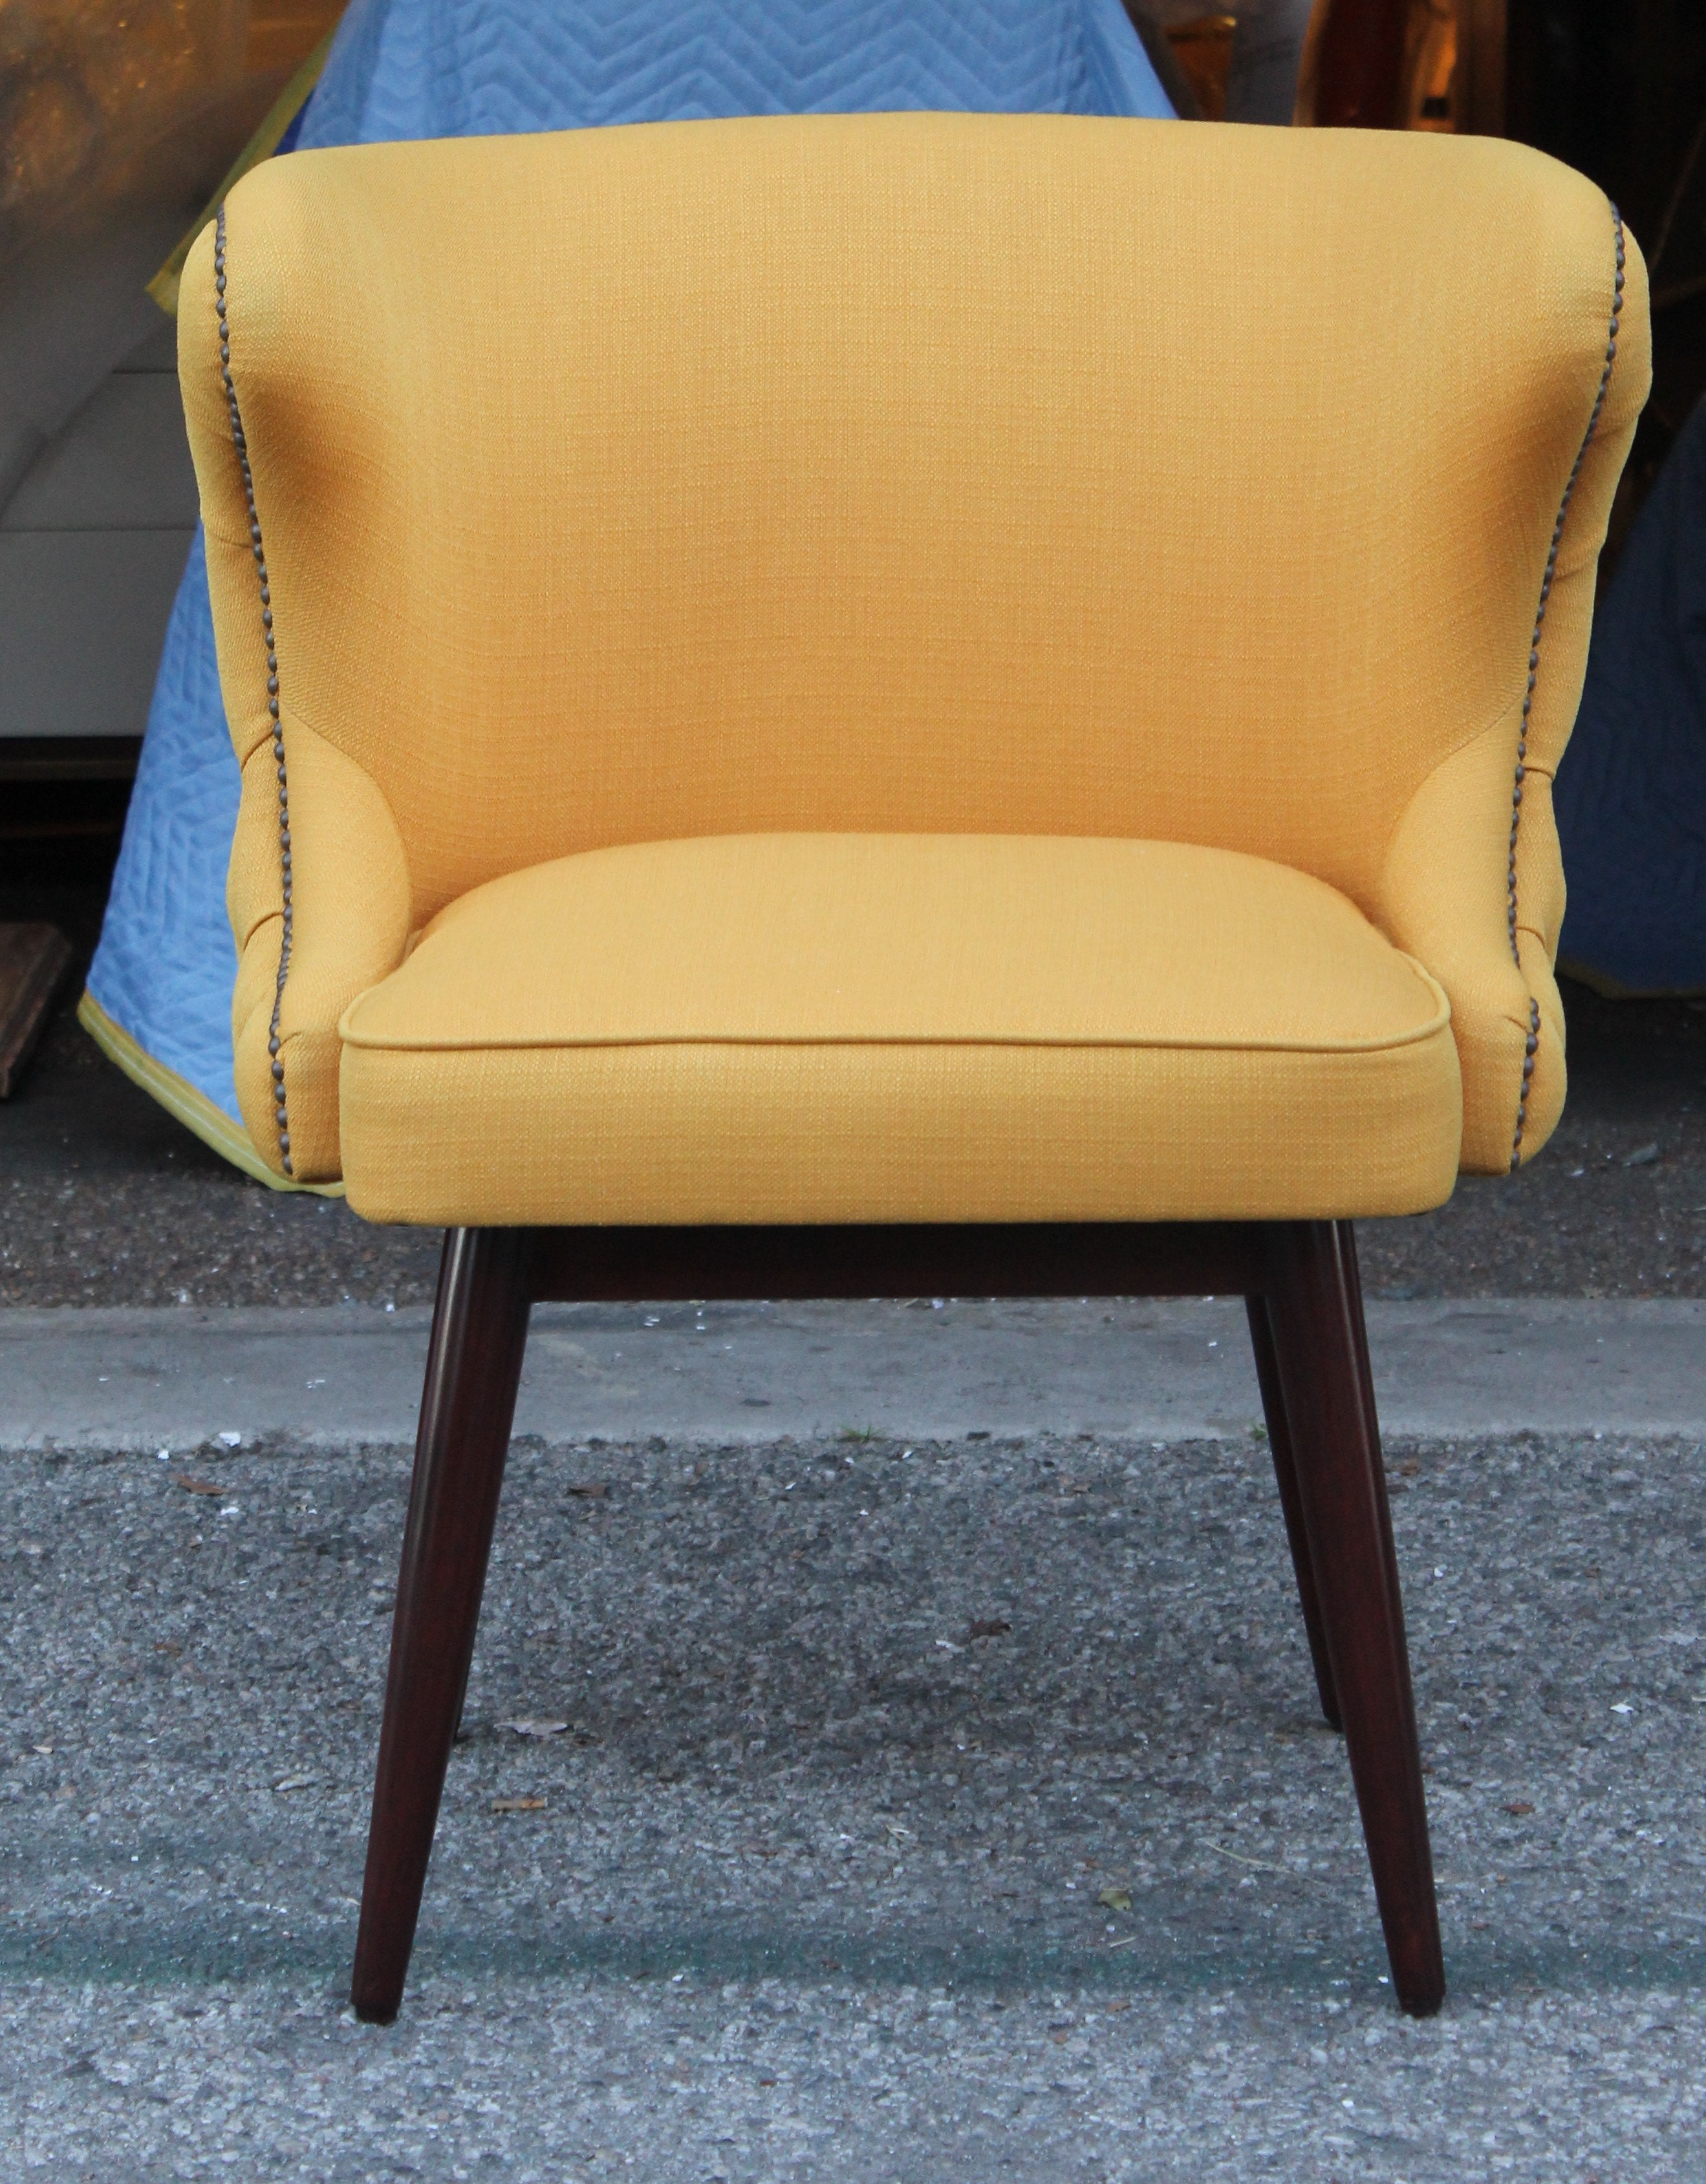 Brentwood Chair Upholstered Dining Chair ...